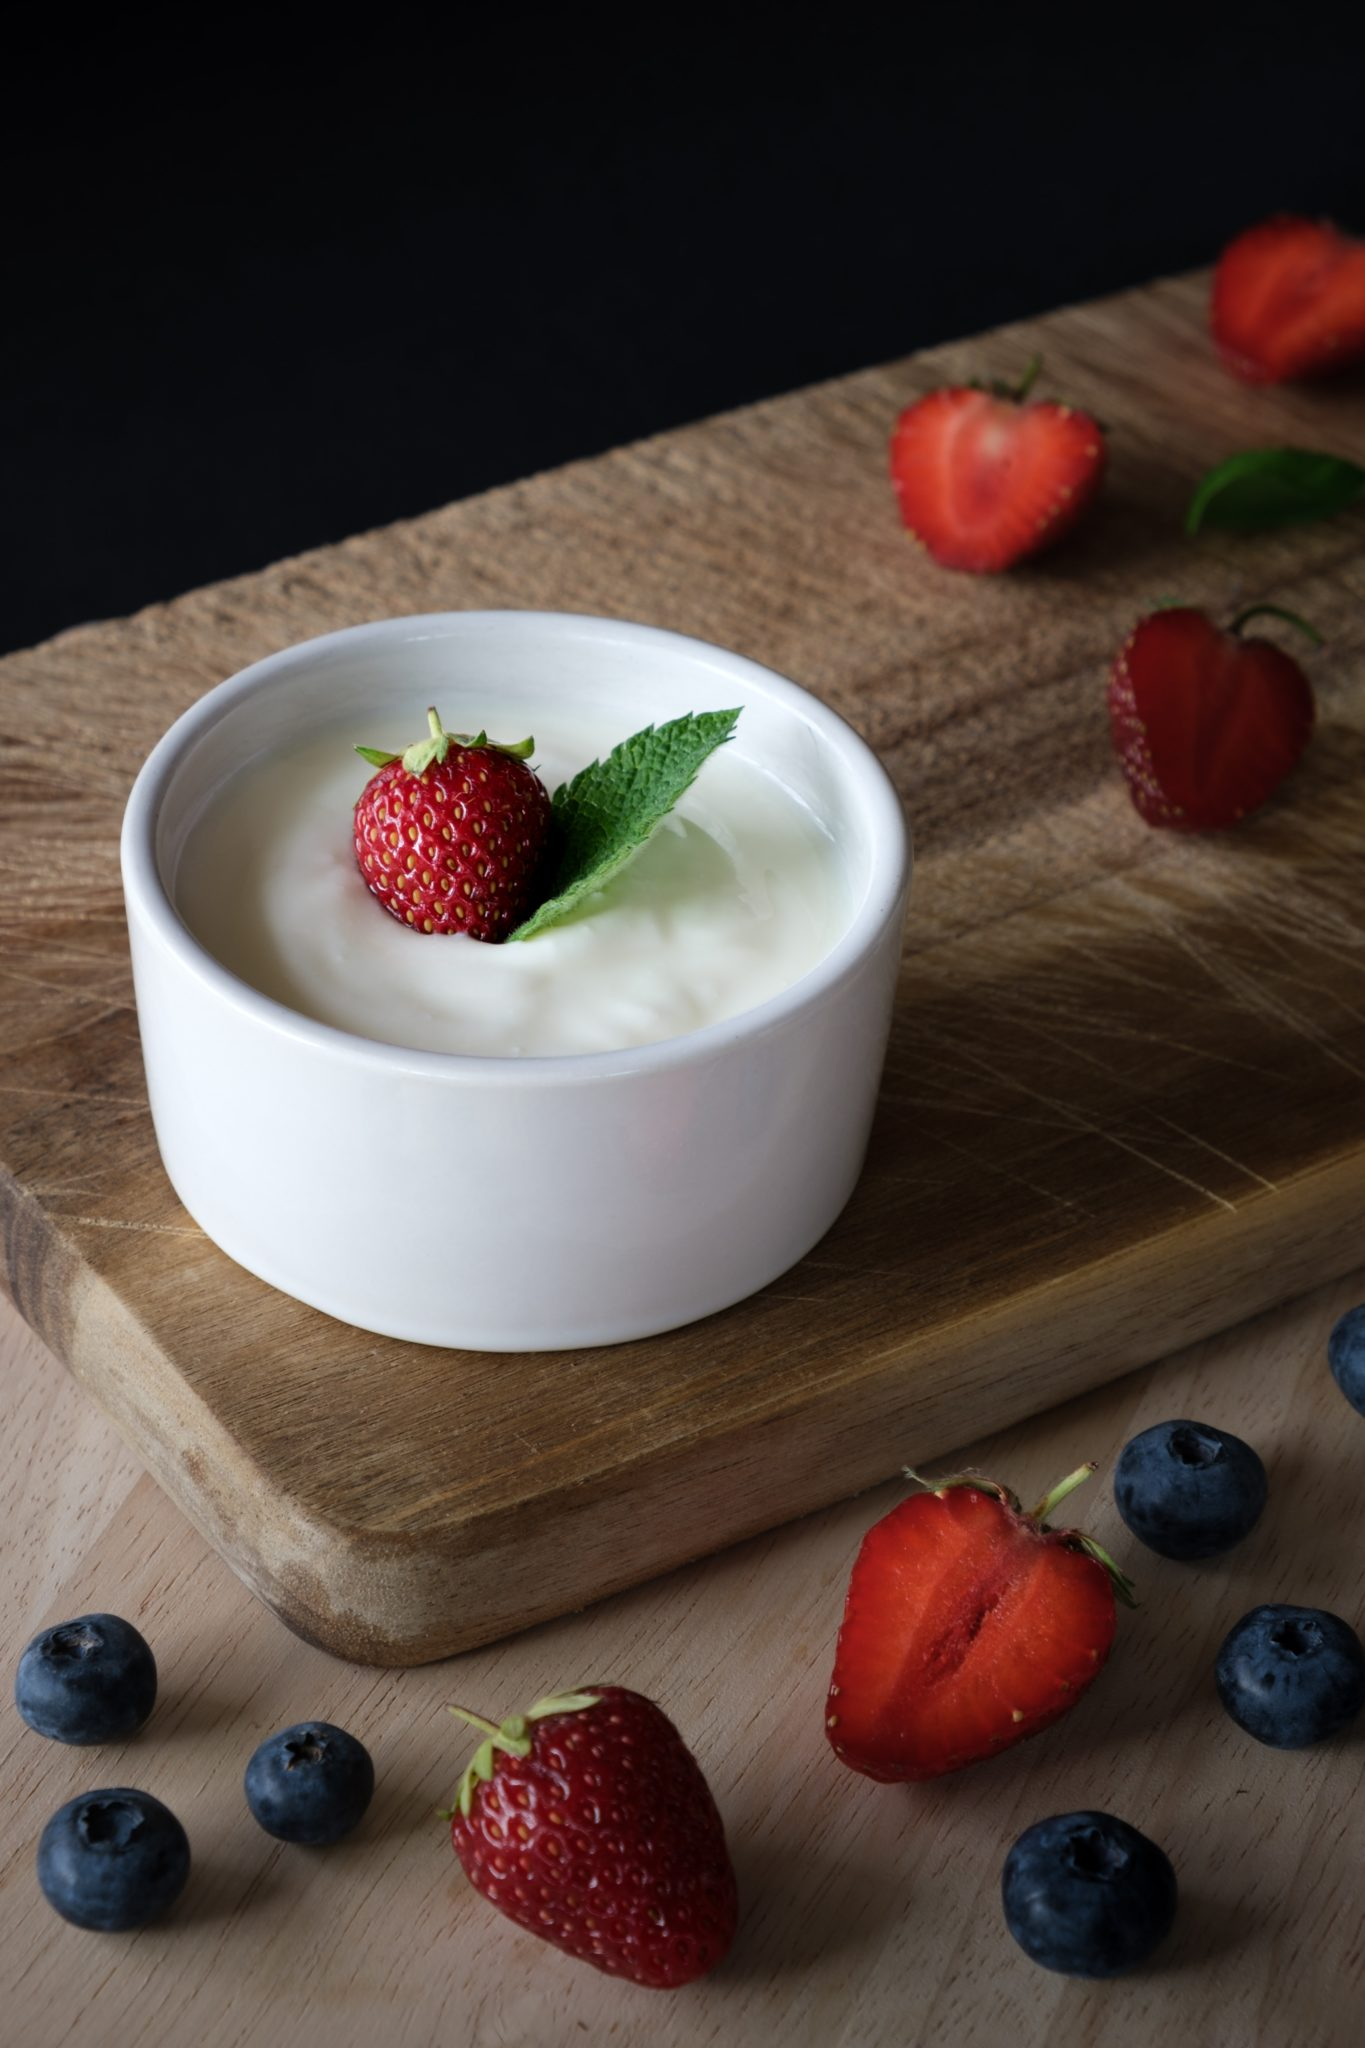 yogurt that contains probiotics for kids in white bowl with berries